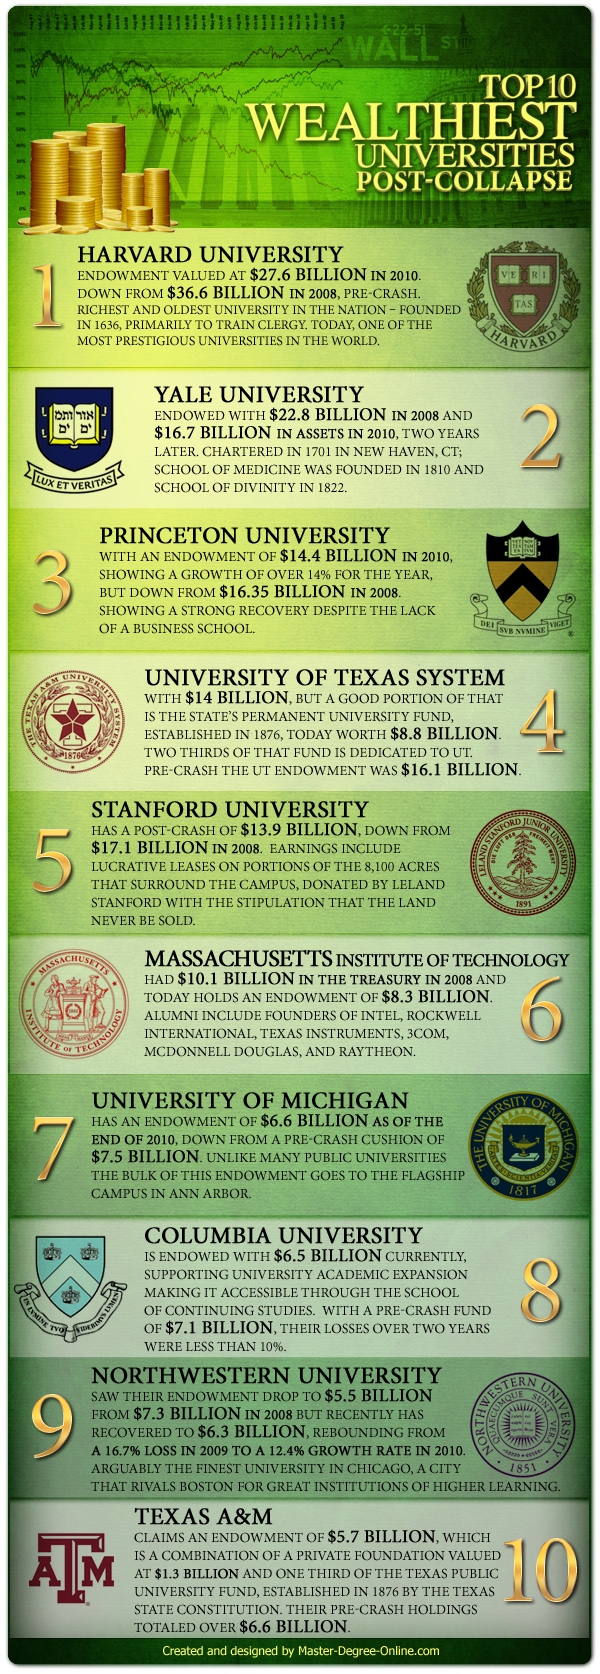 Infographic: Top 10 Wealthiest Universities Post-Recession